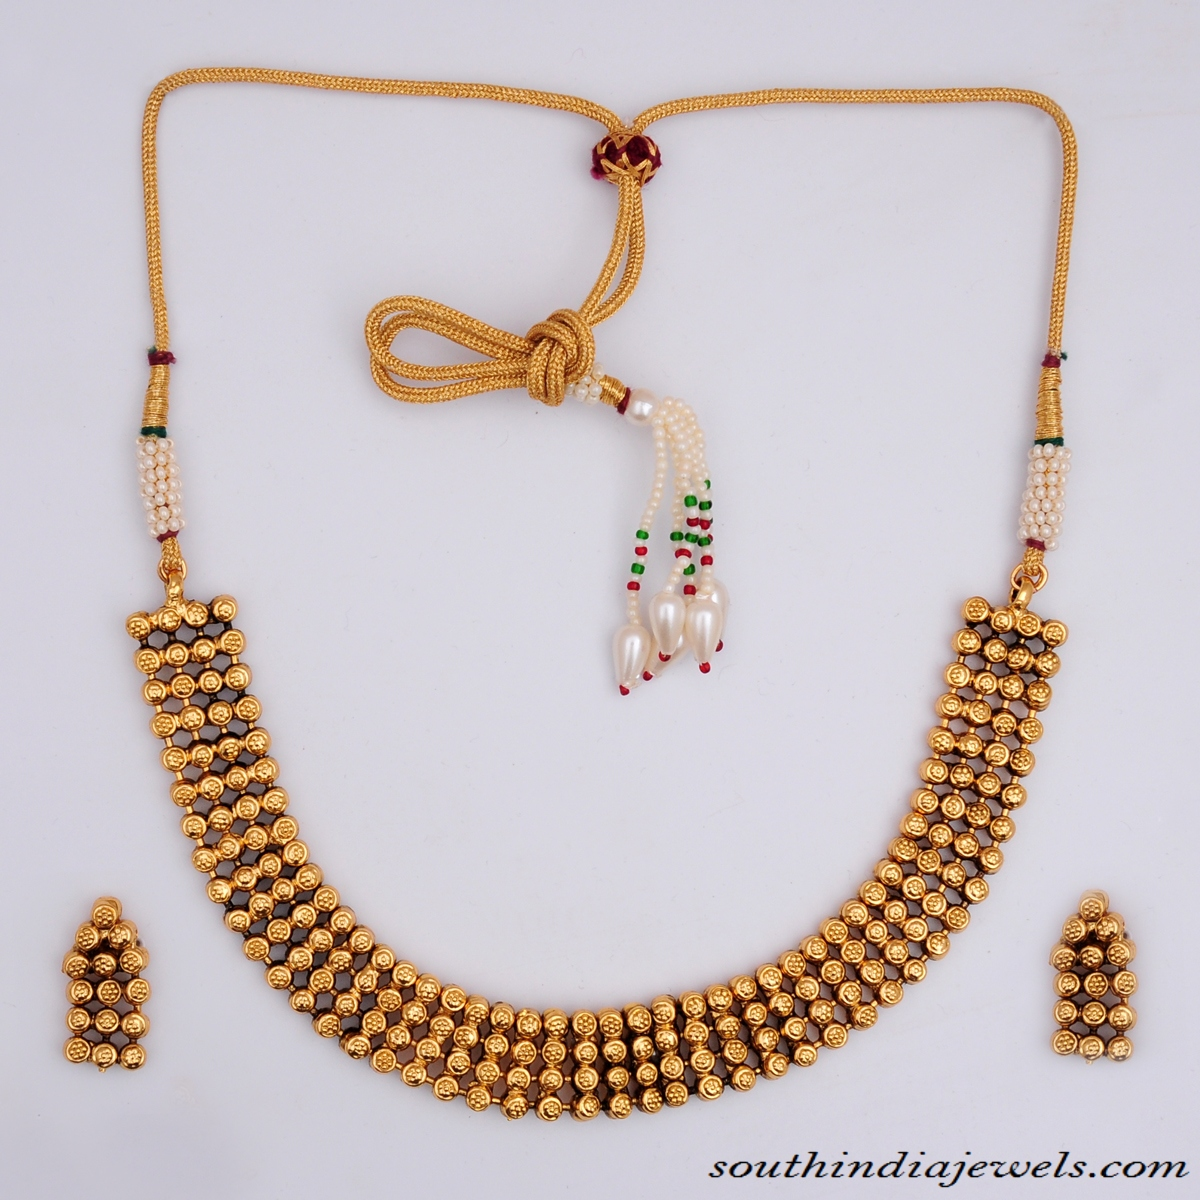 b869dc91a Artificial Antique Necklace set with earrings ~ South India Jewels